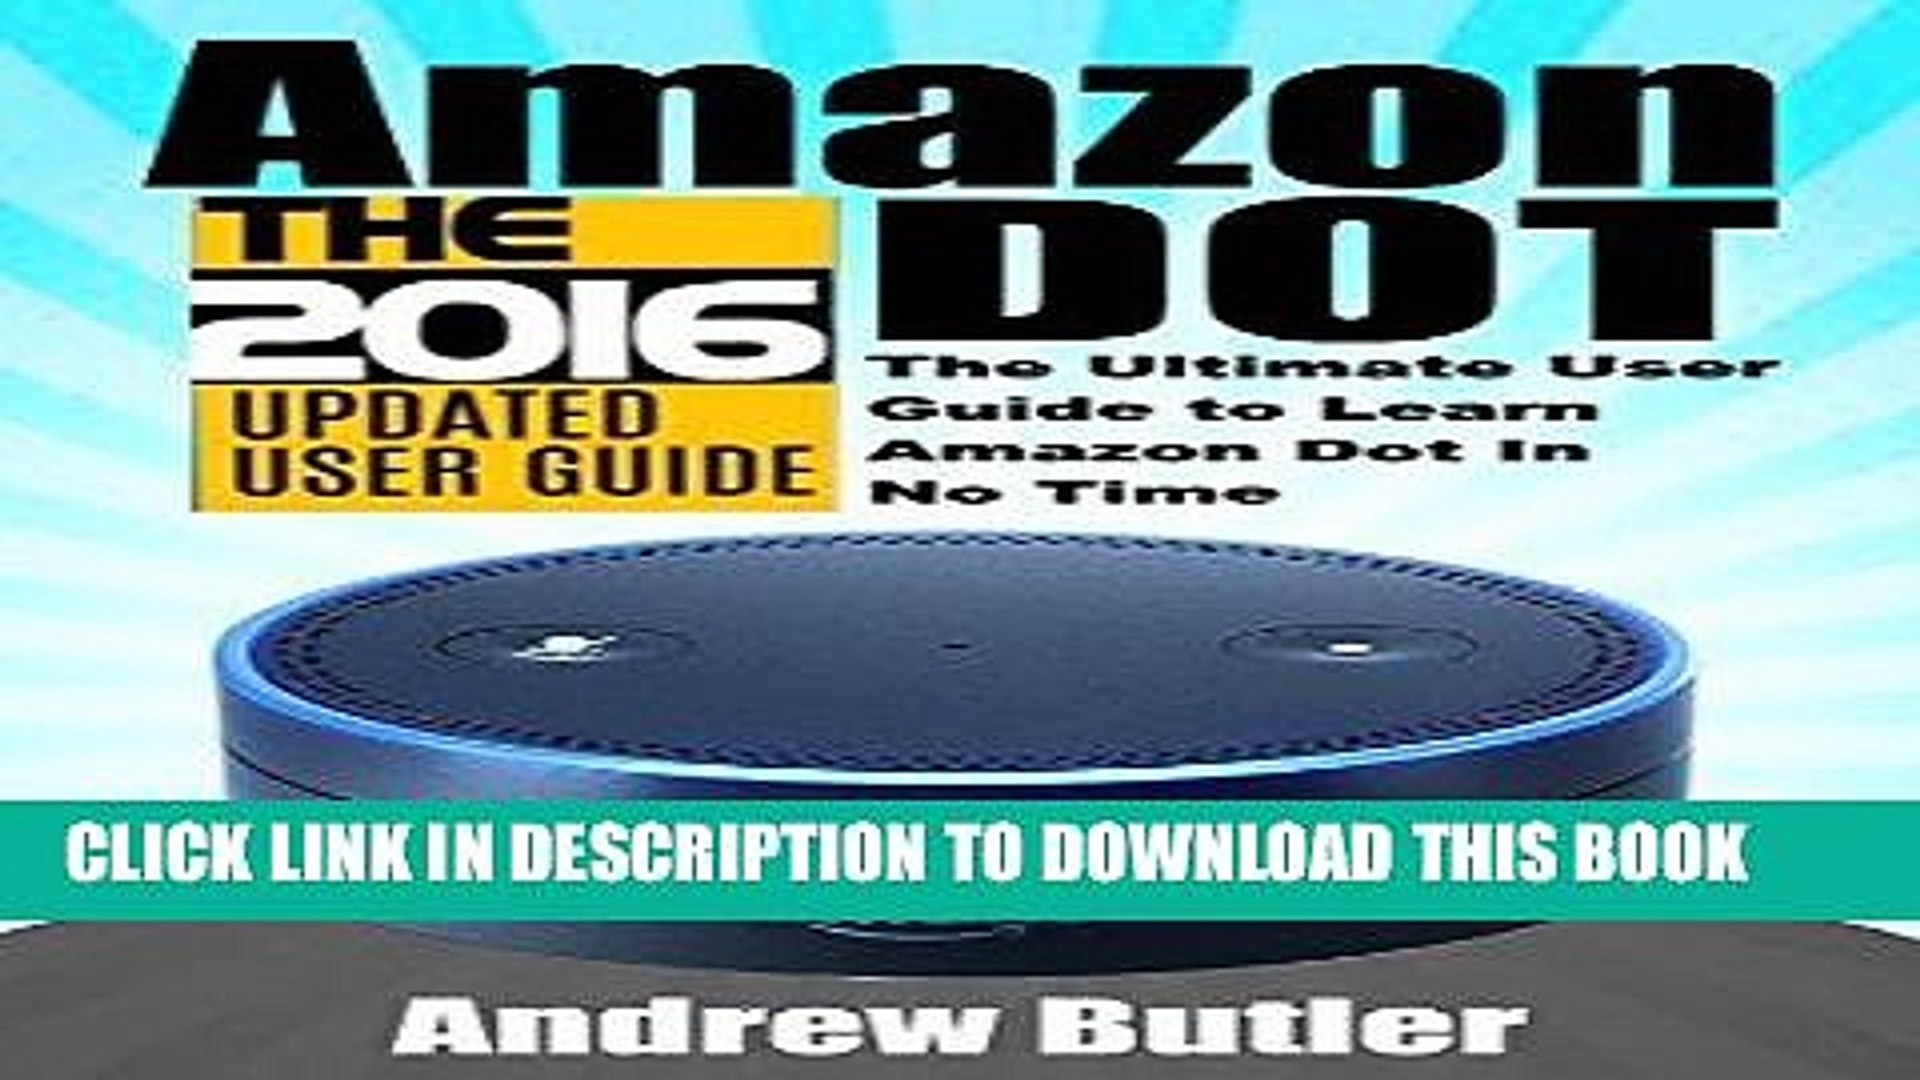 Ebook Amazon Echo: Dot: The Ultimate User Guide to Learn Amazon Dot In No Time (Amazon Echo